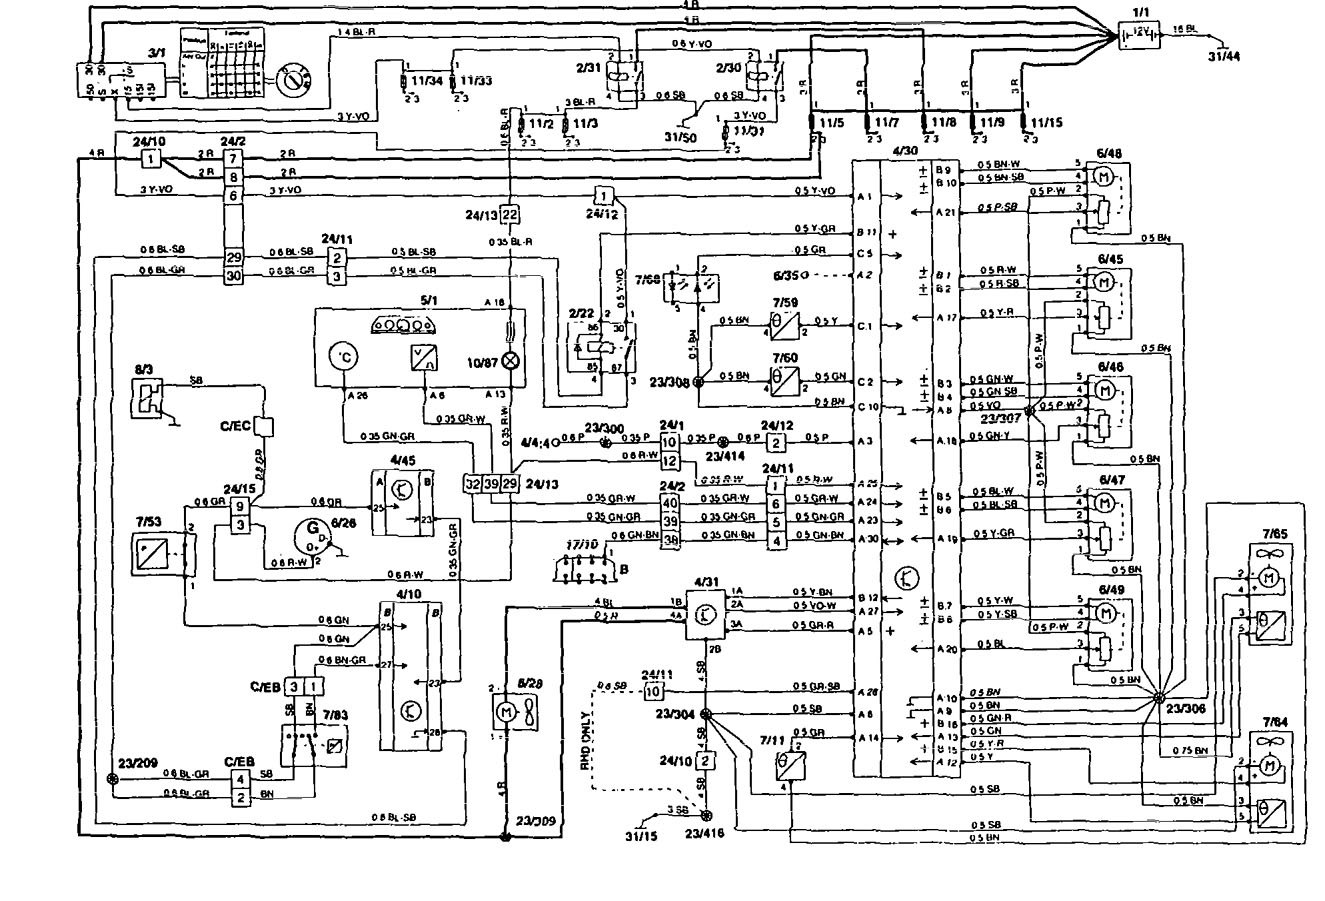 hight resolution of volvo 850 1995 wiring diagrams hvac controls volvo wiring diagrams 240 volvo wiring diagrams 240